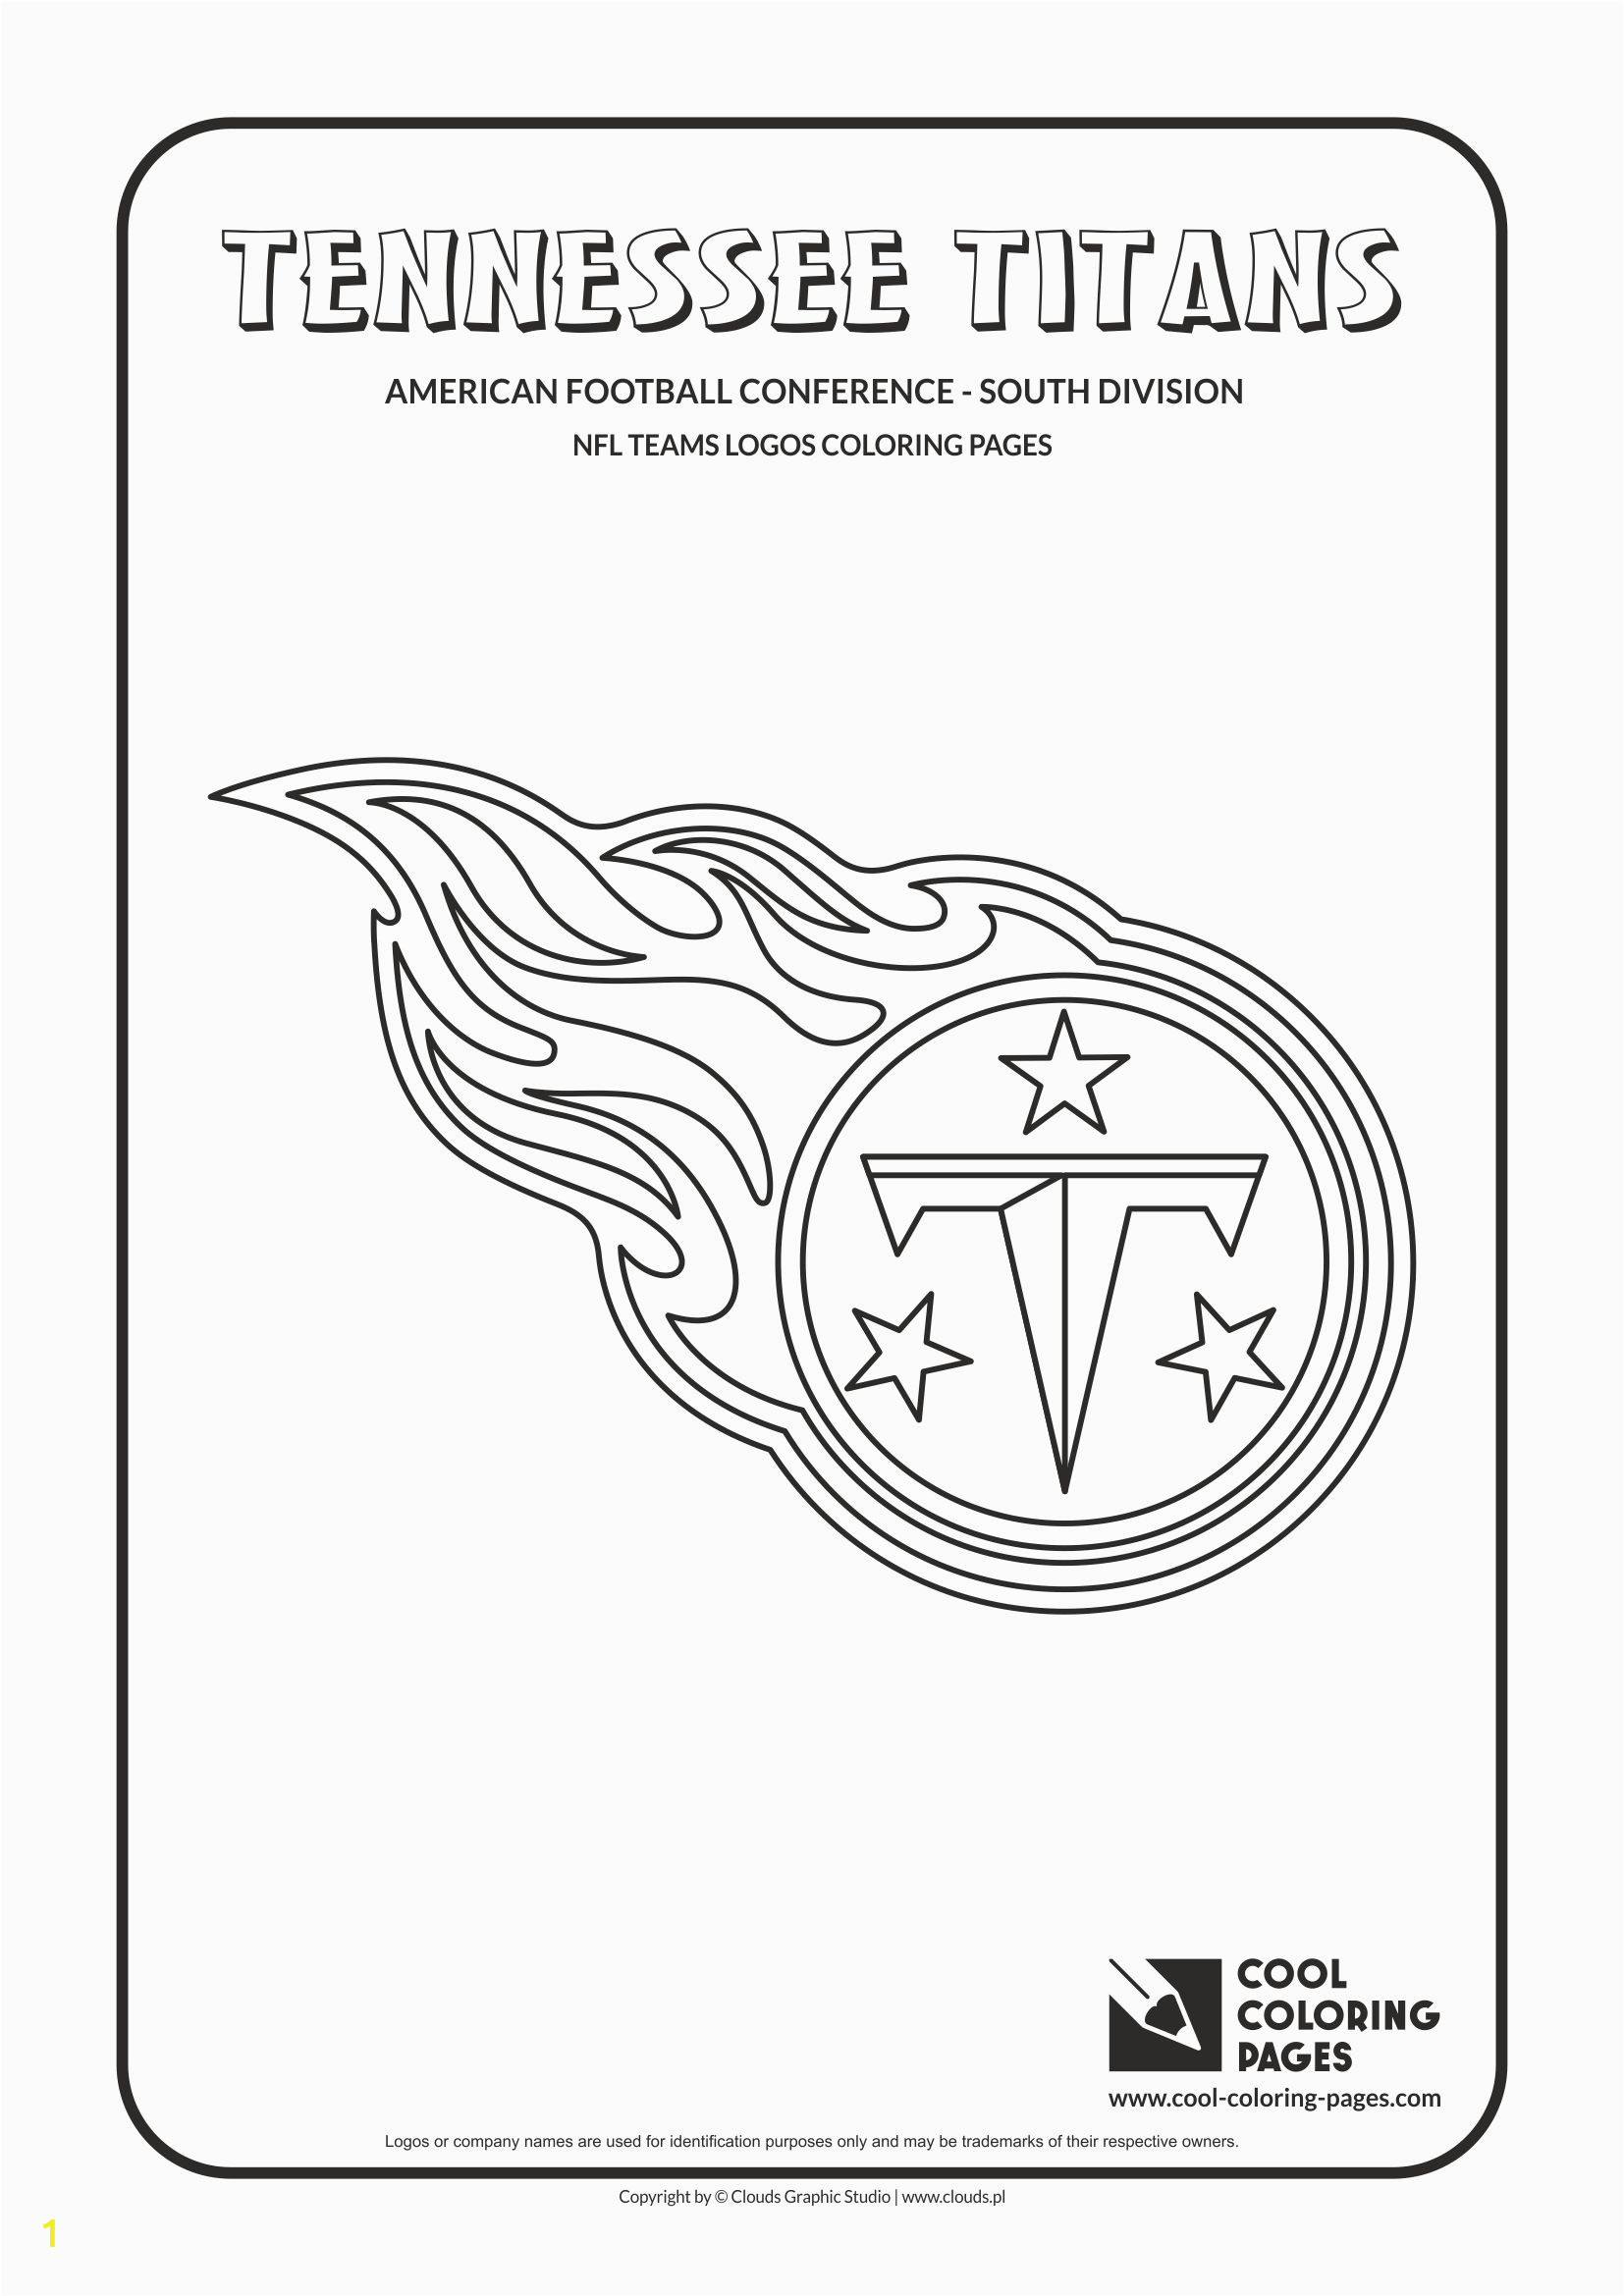 tennessee titans nfl american football teams logos coloring pages